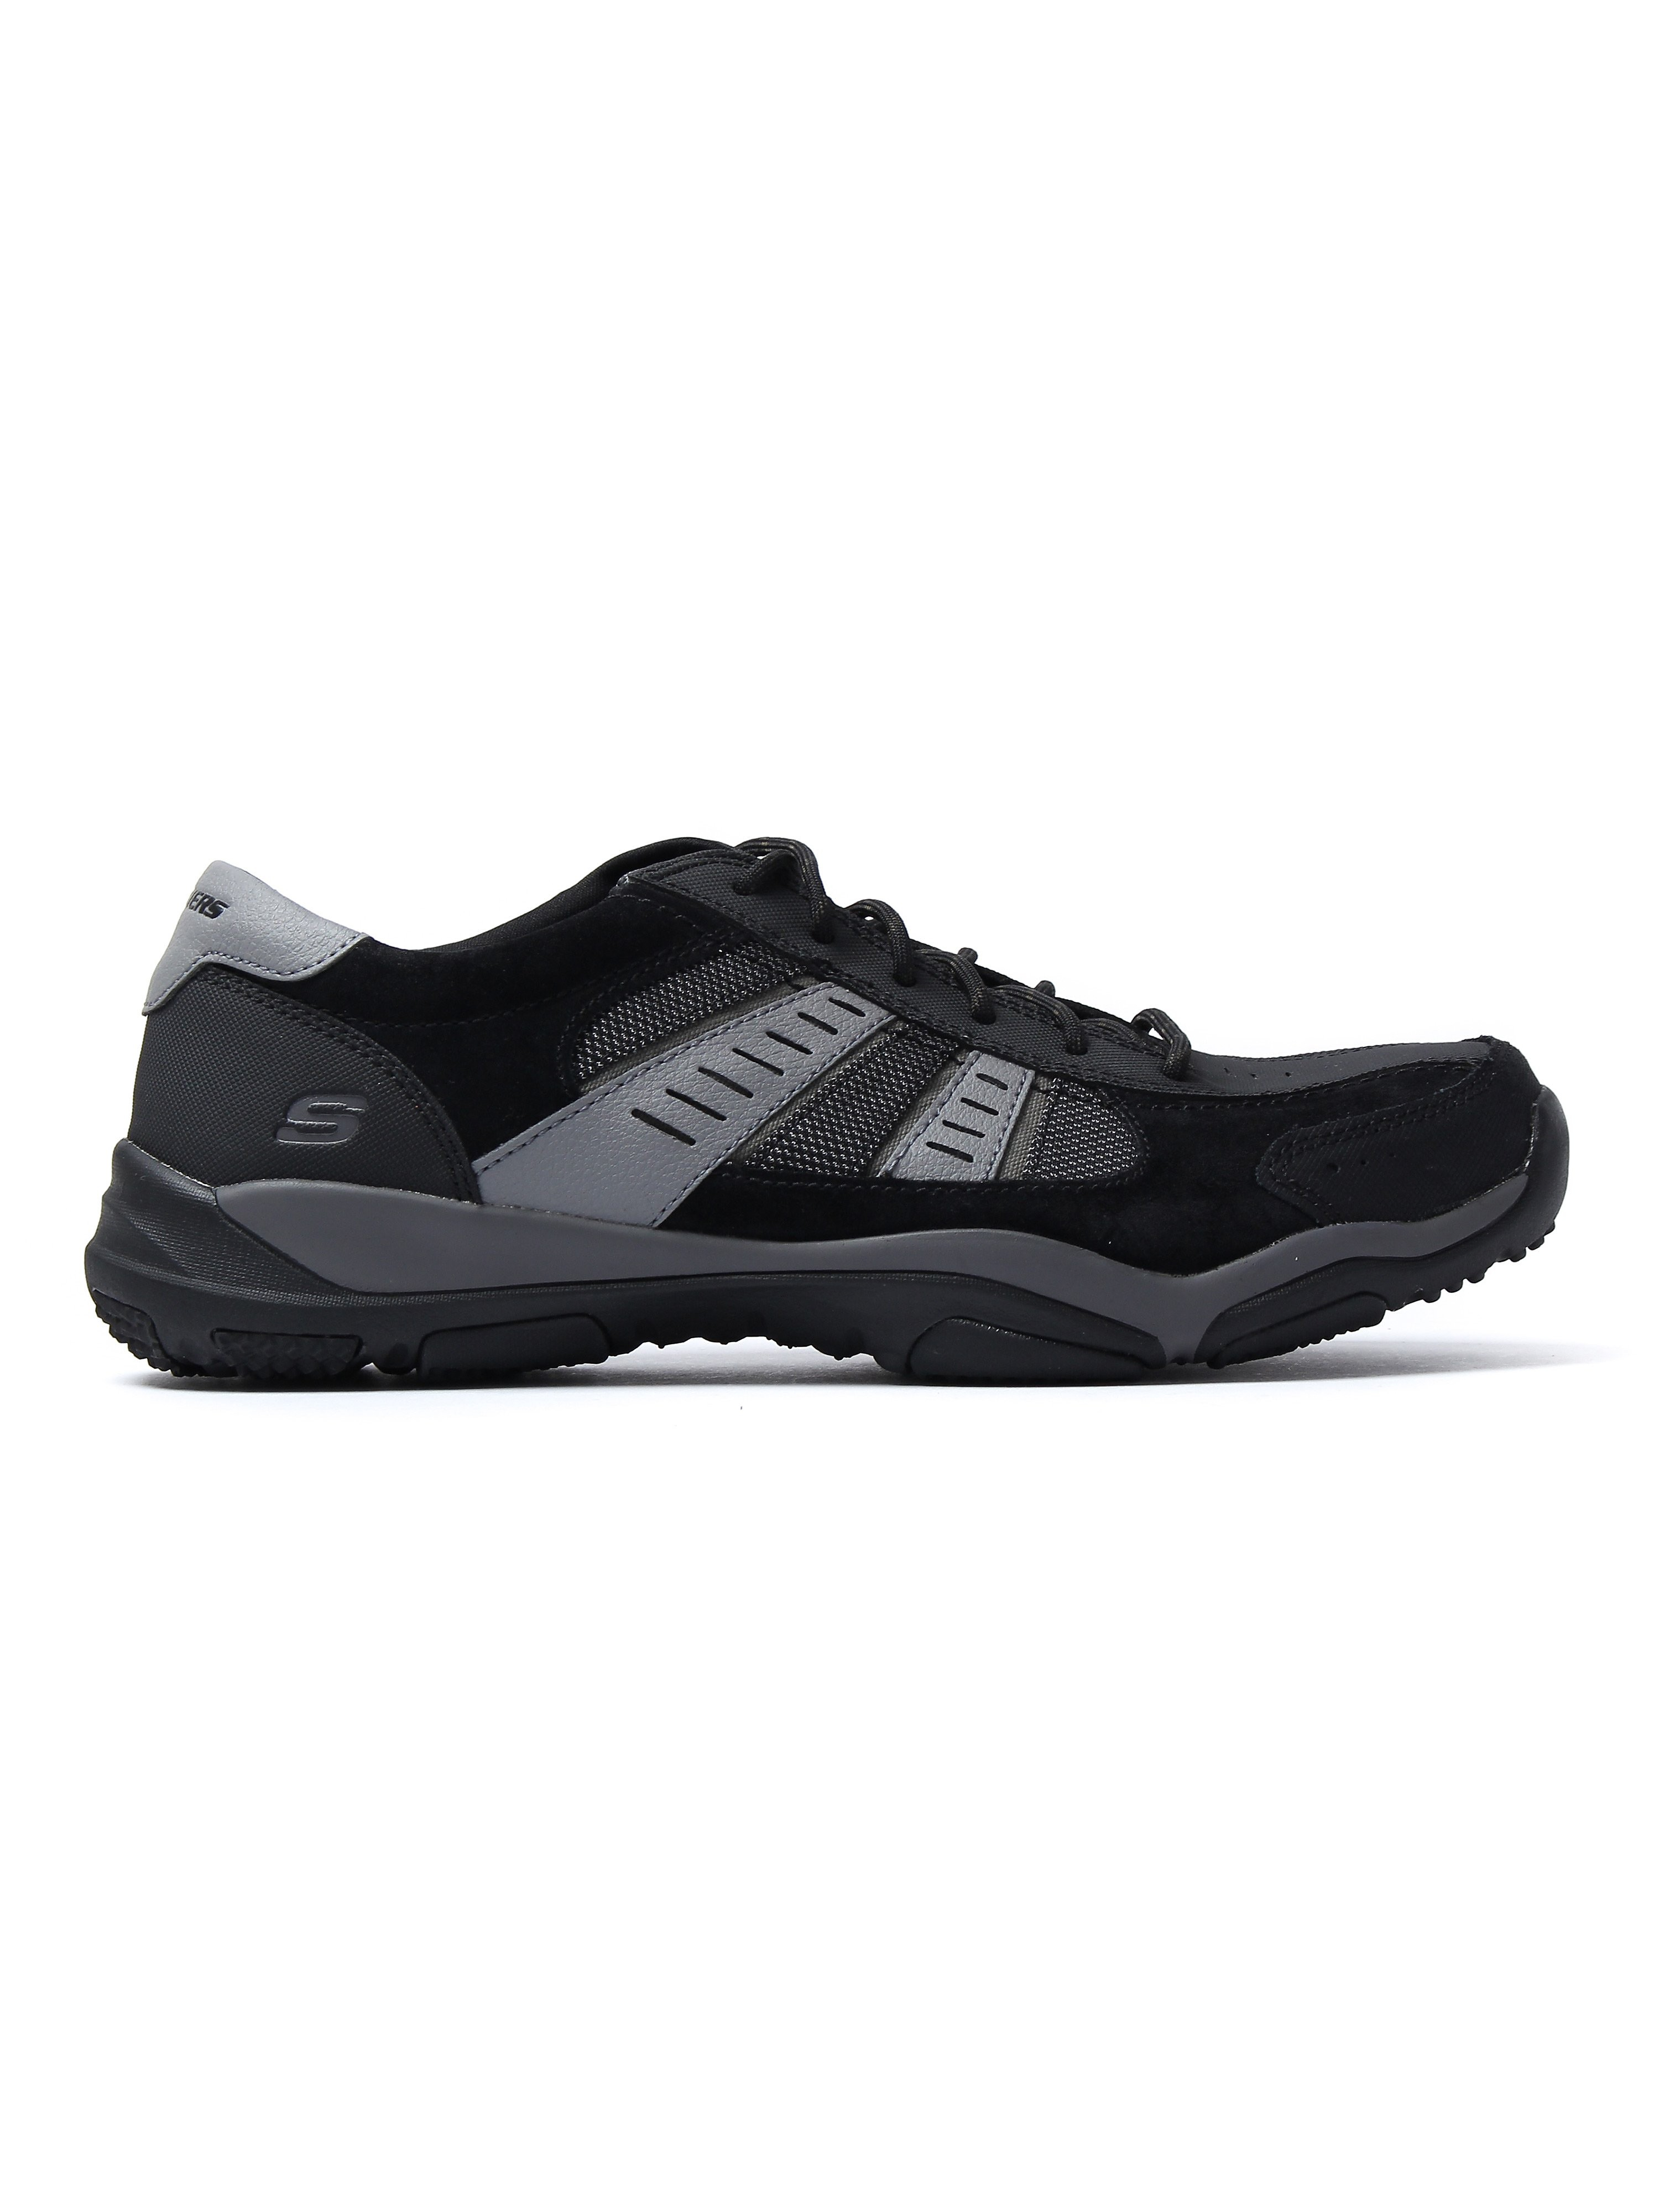 Skechers Men's Larson Alton Trainers - Black